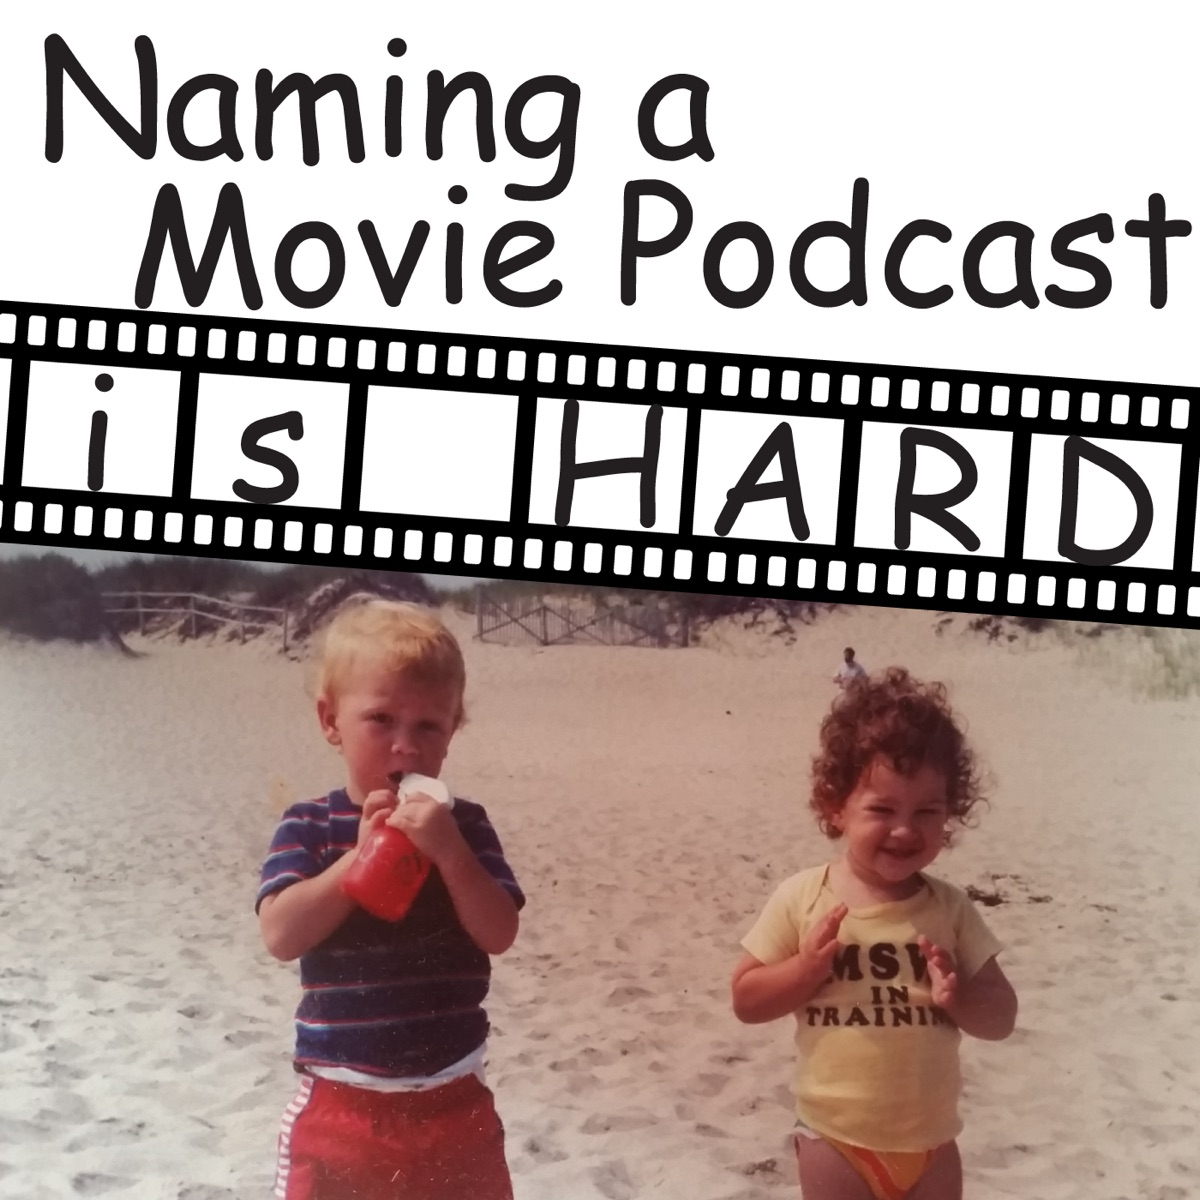 Naming A Movie Podcast Is Hard